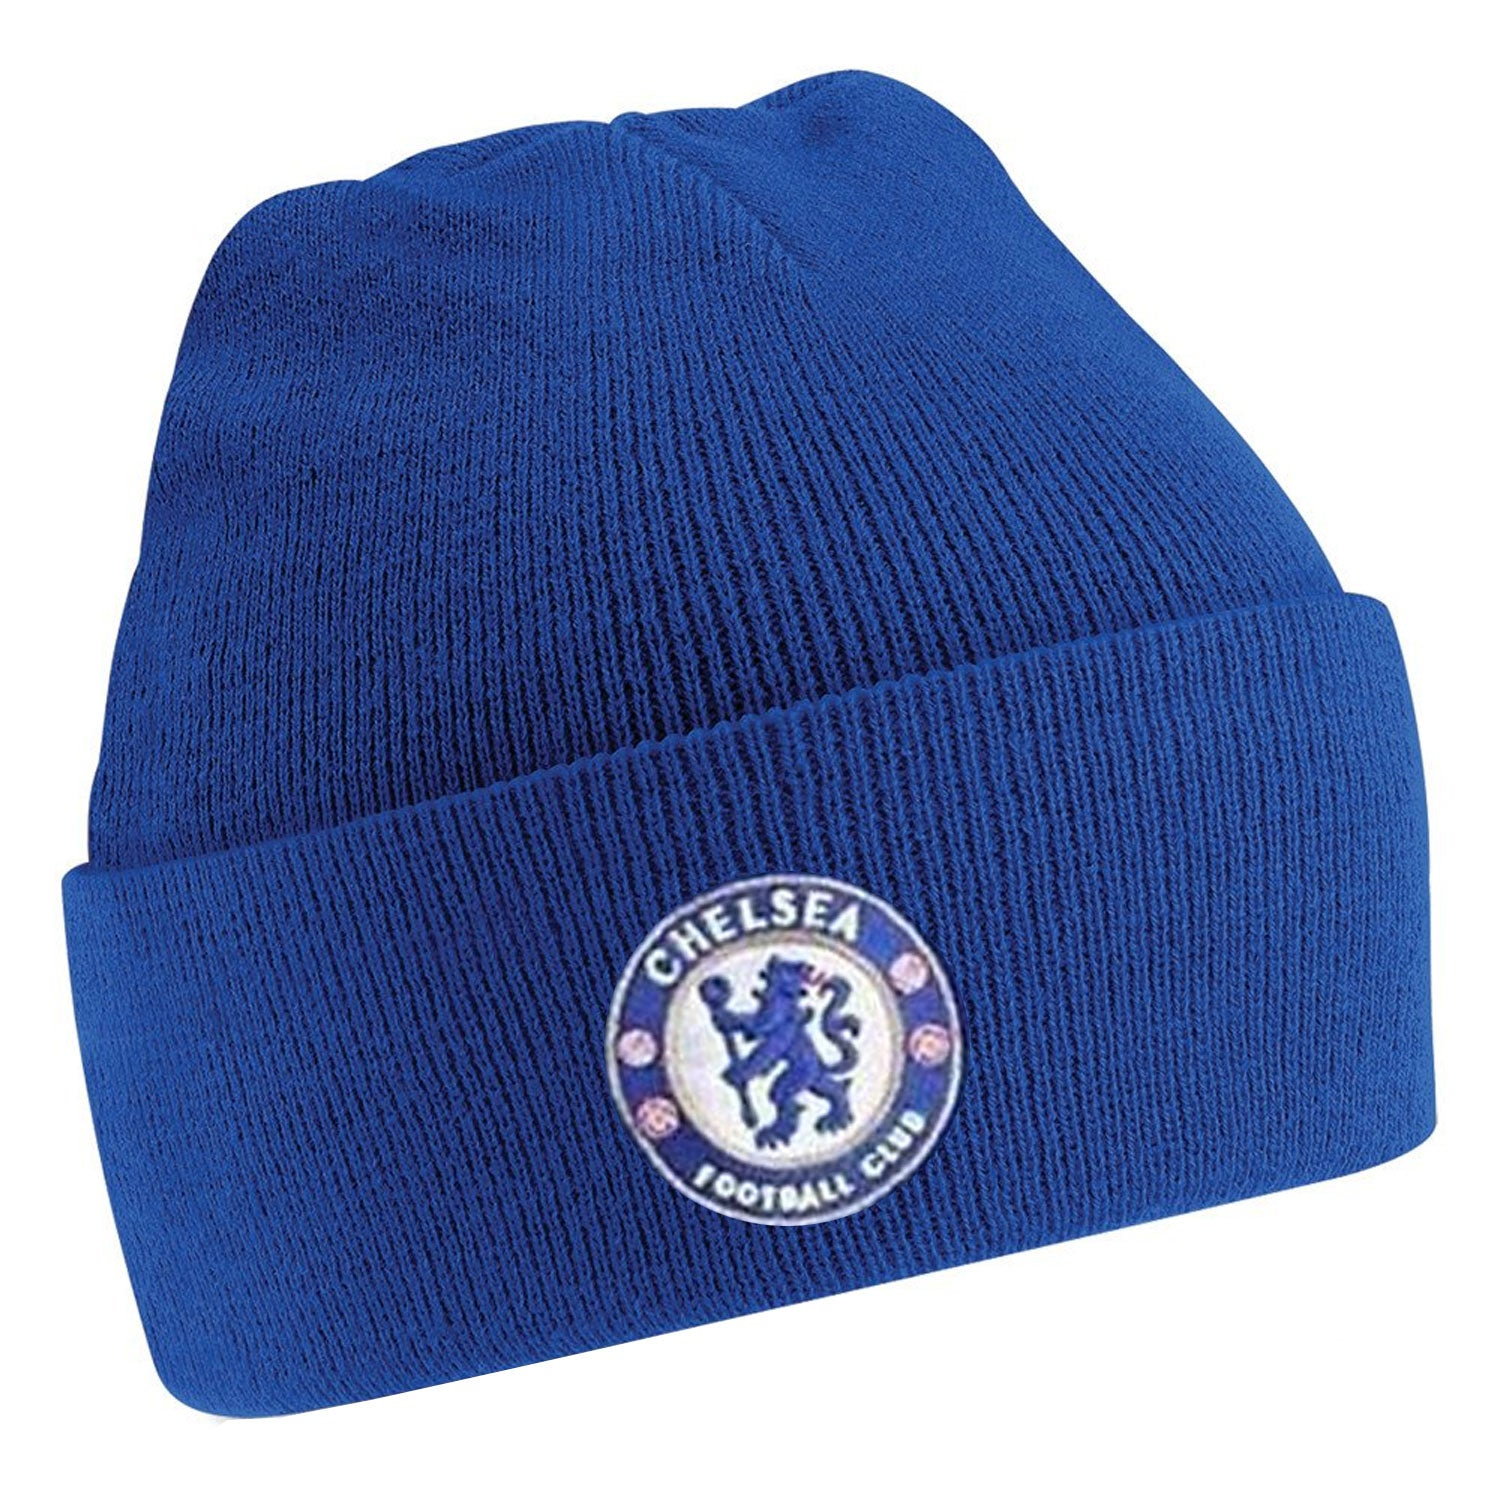 f6607e9d617 Chelsea FC Unisex Official Cuff Knitted Beanie Hat